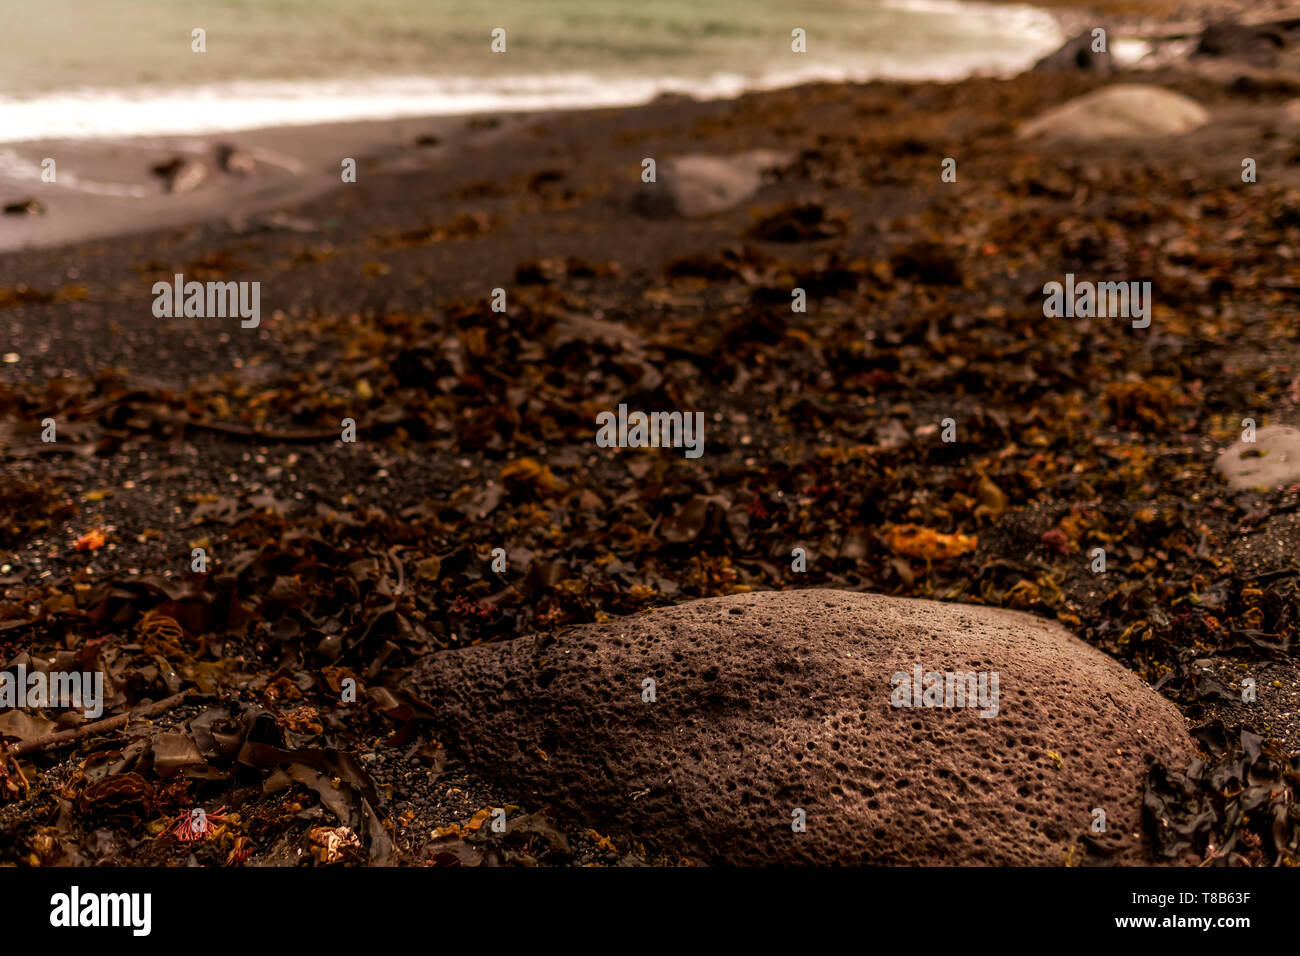 shallow dwpth of field over rock in the black send sea, Jeju, South Korea - Stock Image